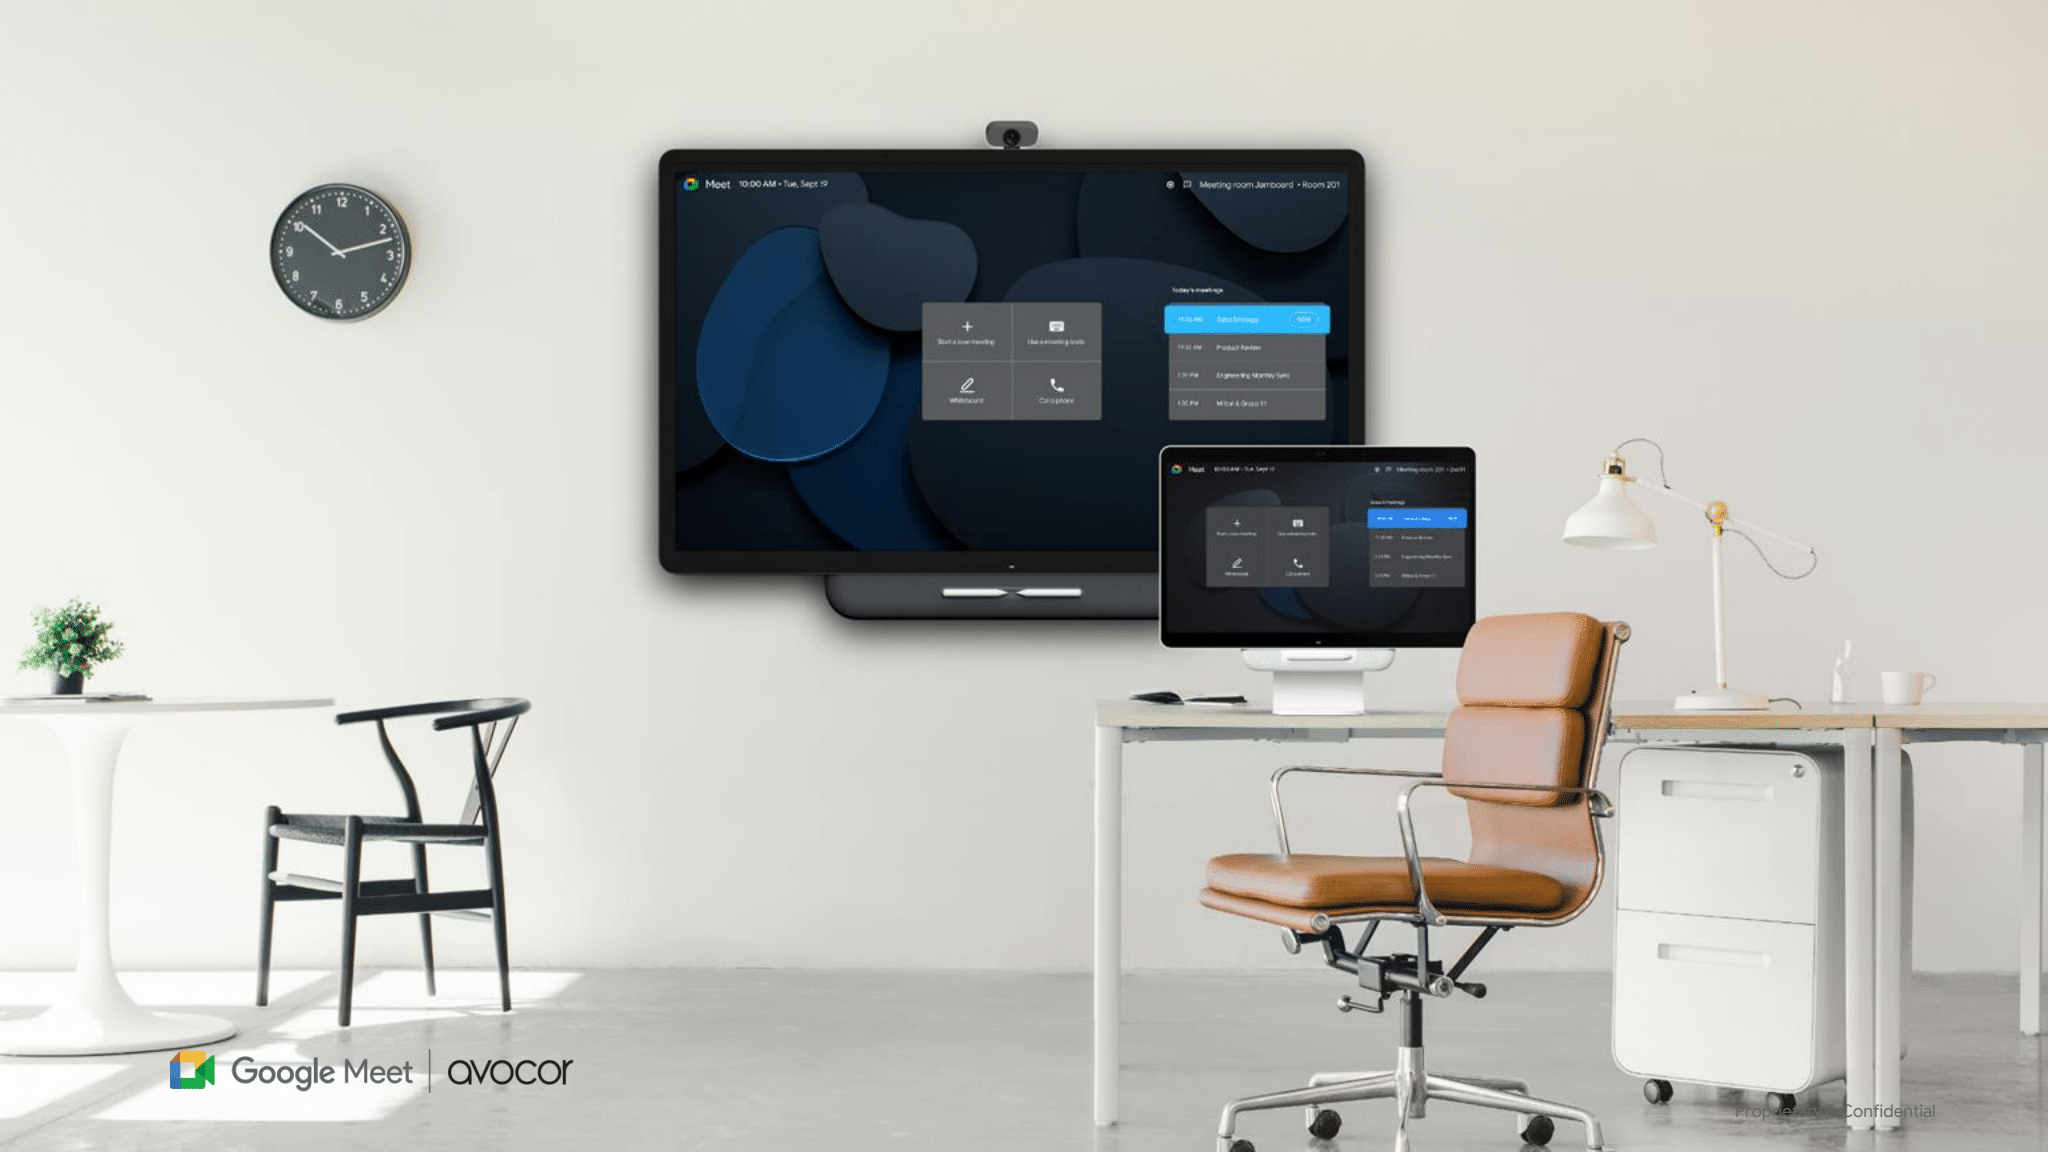 Avocor teams up with Google to release new teleconferencing hardware